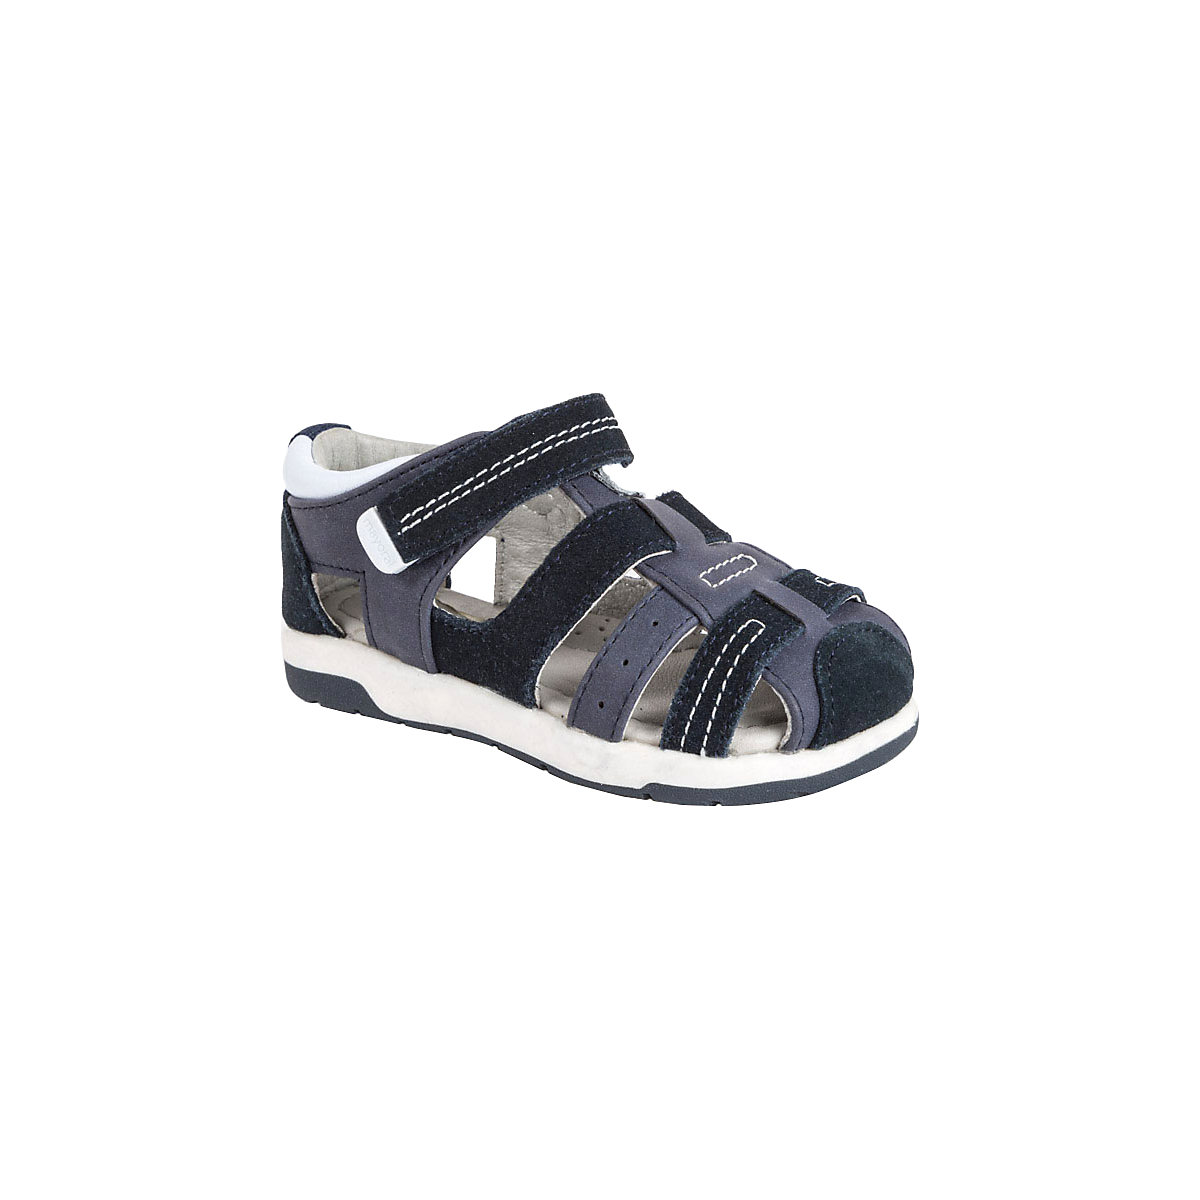 MAYORAL Sandals 10643625 children's shoes comfortable and light girls and boys sandals adidas s74649 sports and entertainment for boys